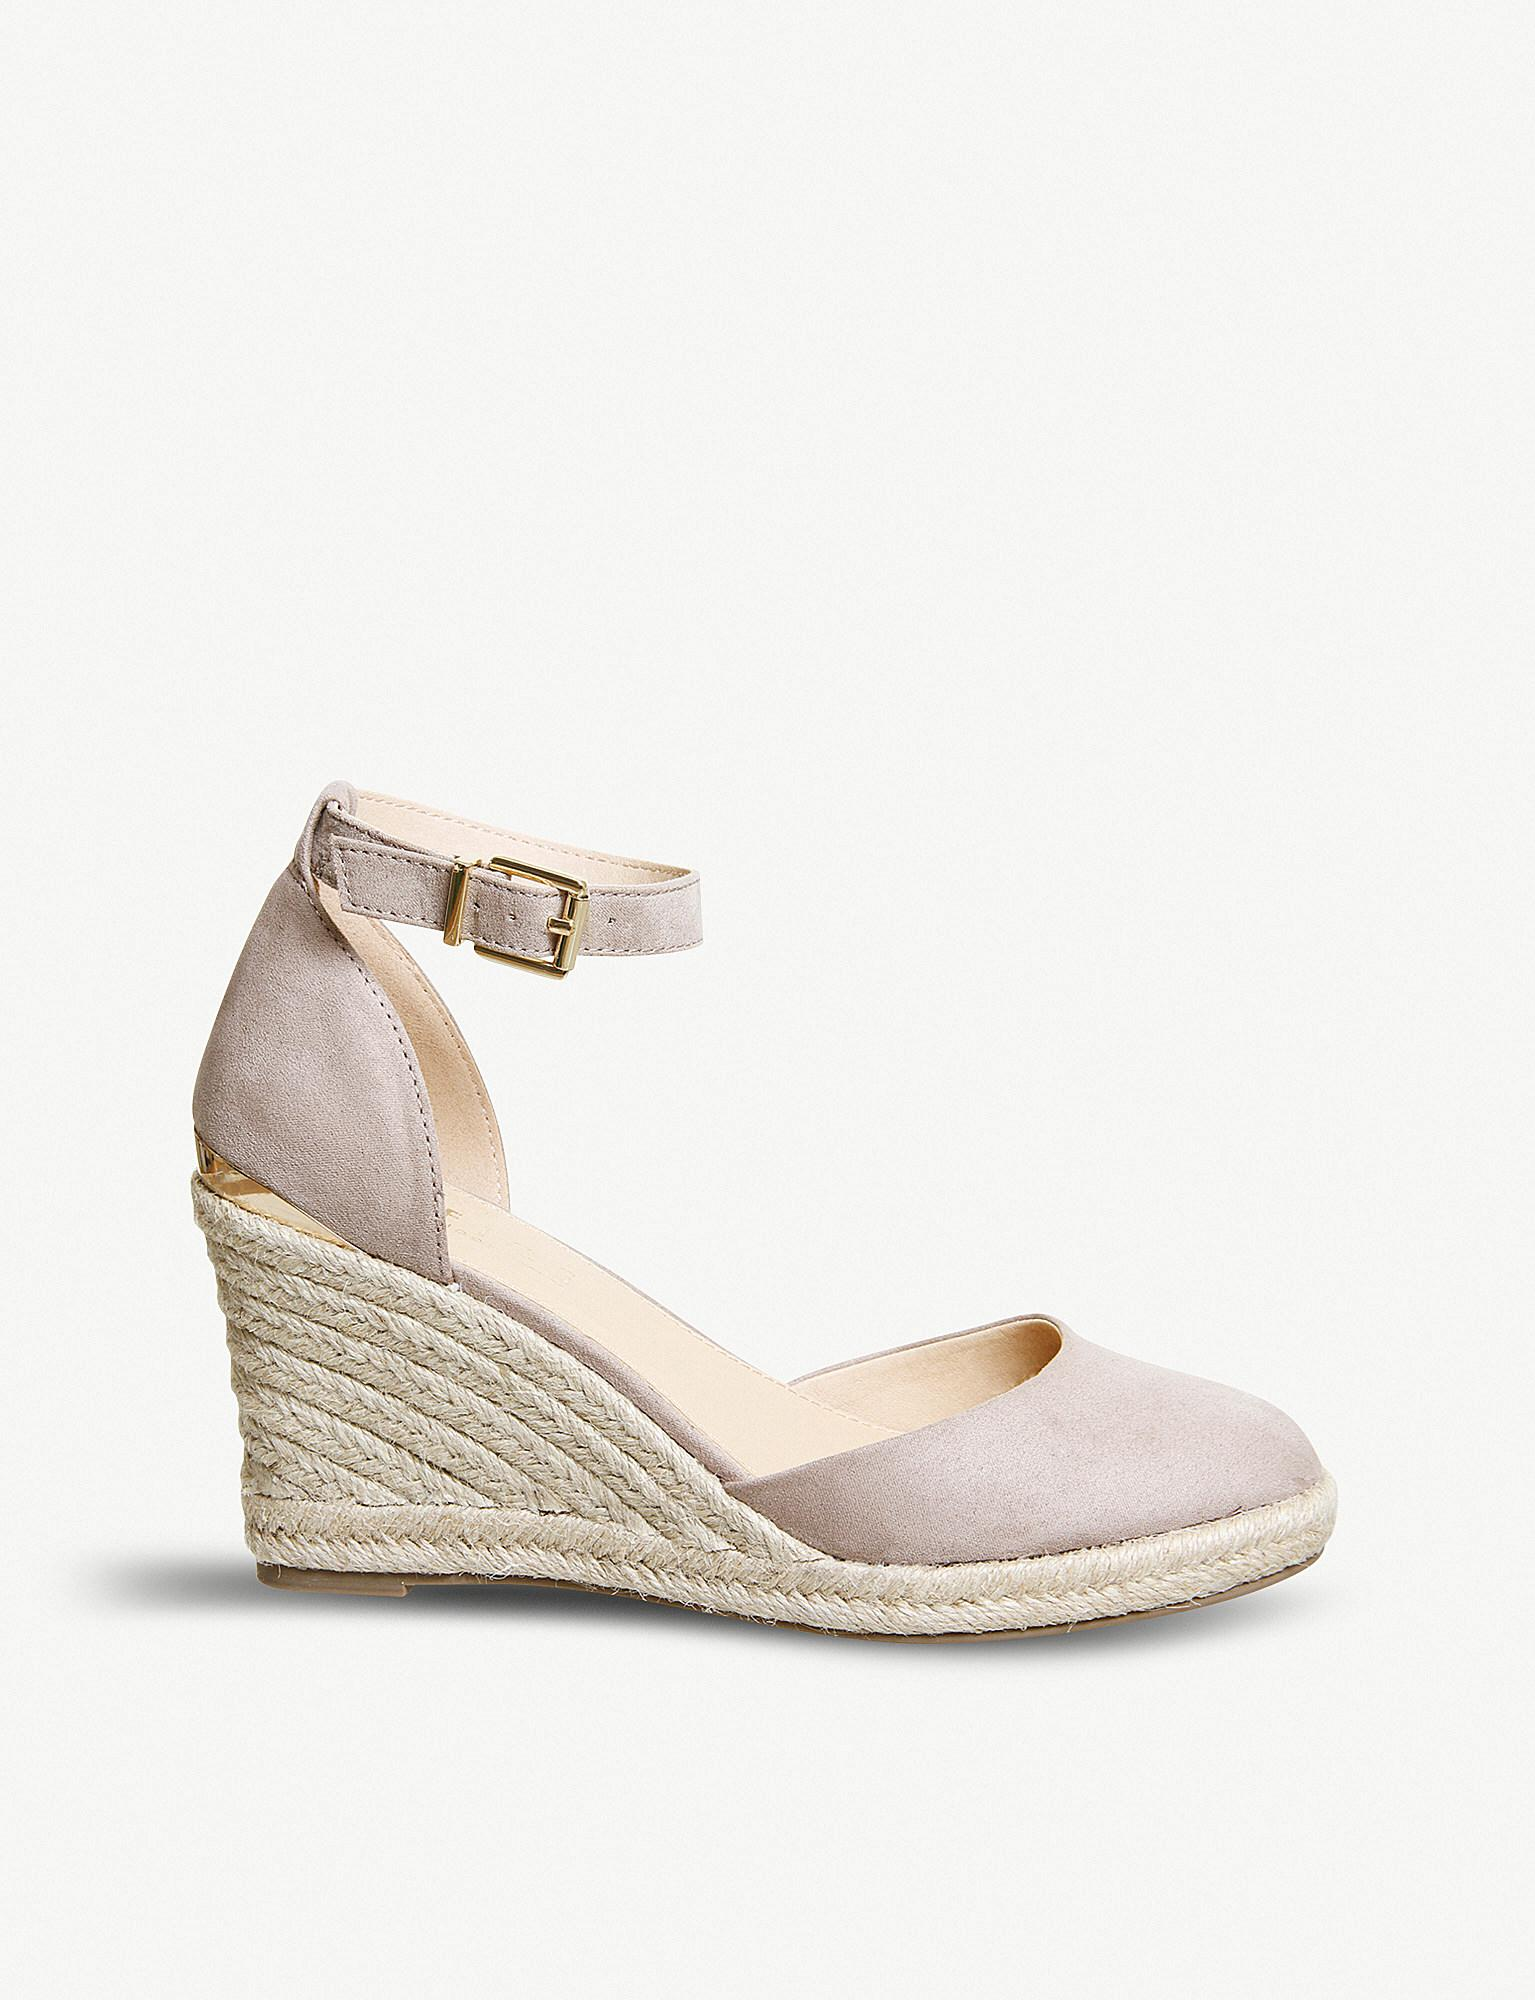 db3c06f272a2 Office Marsha Suedette Espadrille Wedges in Metallic - Lyst